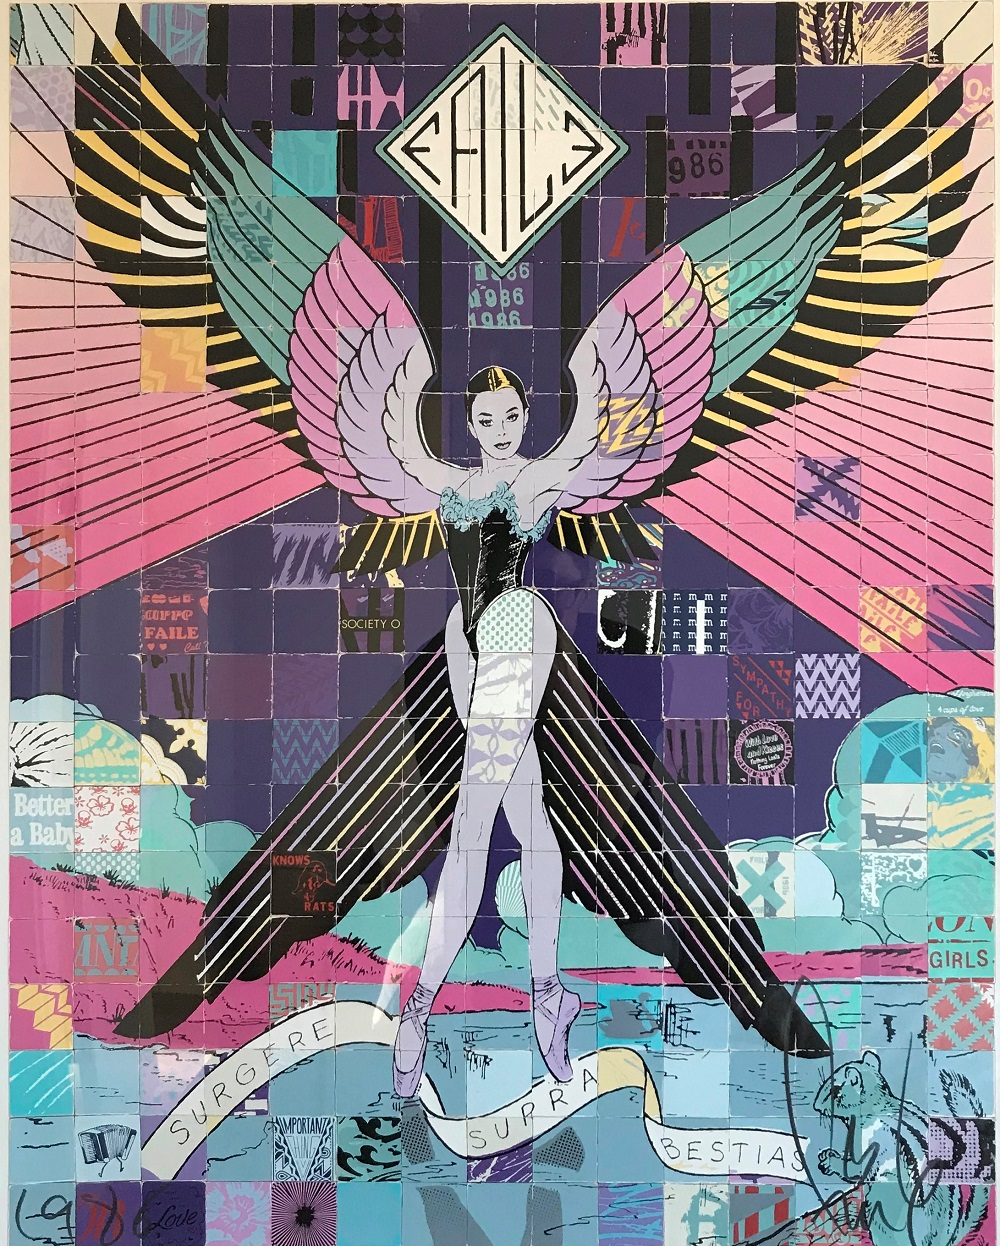 Surgere Supra Bestias artwork by Faile - art listed for sale on Artplode